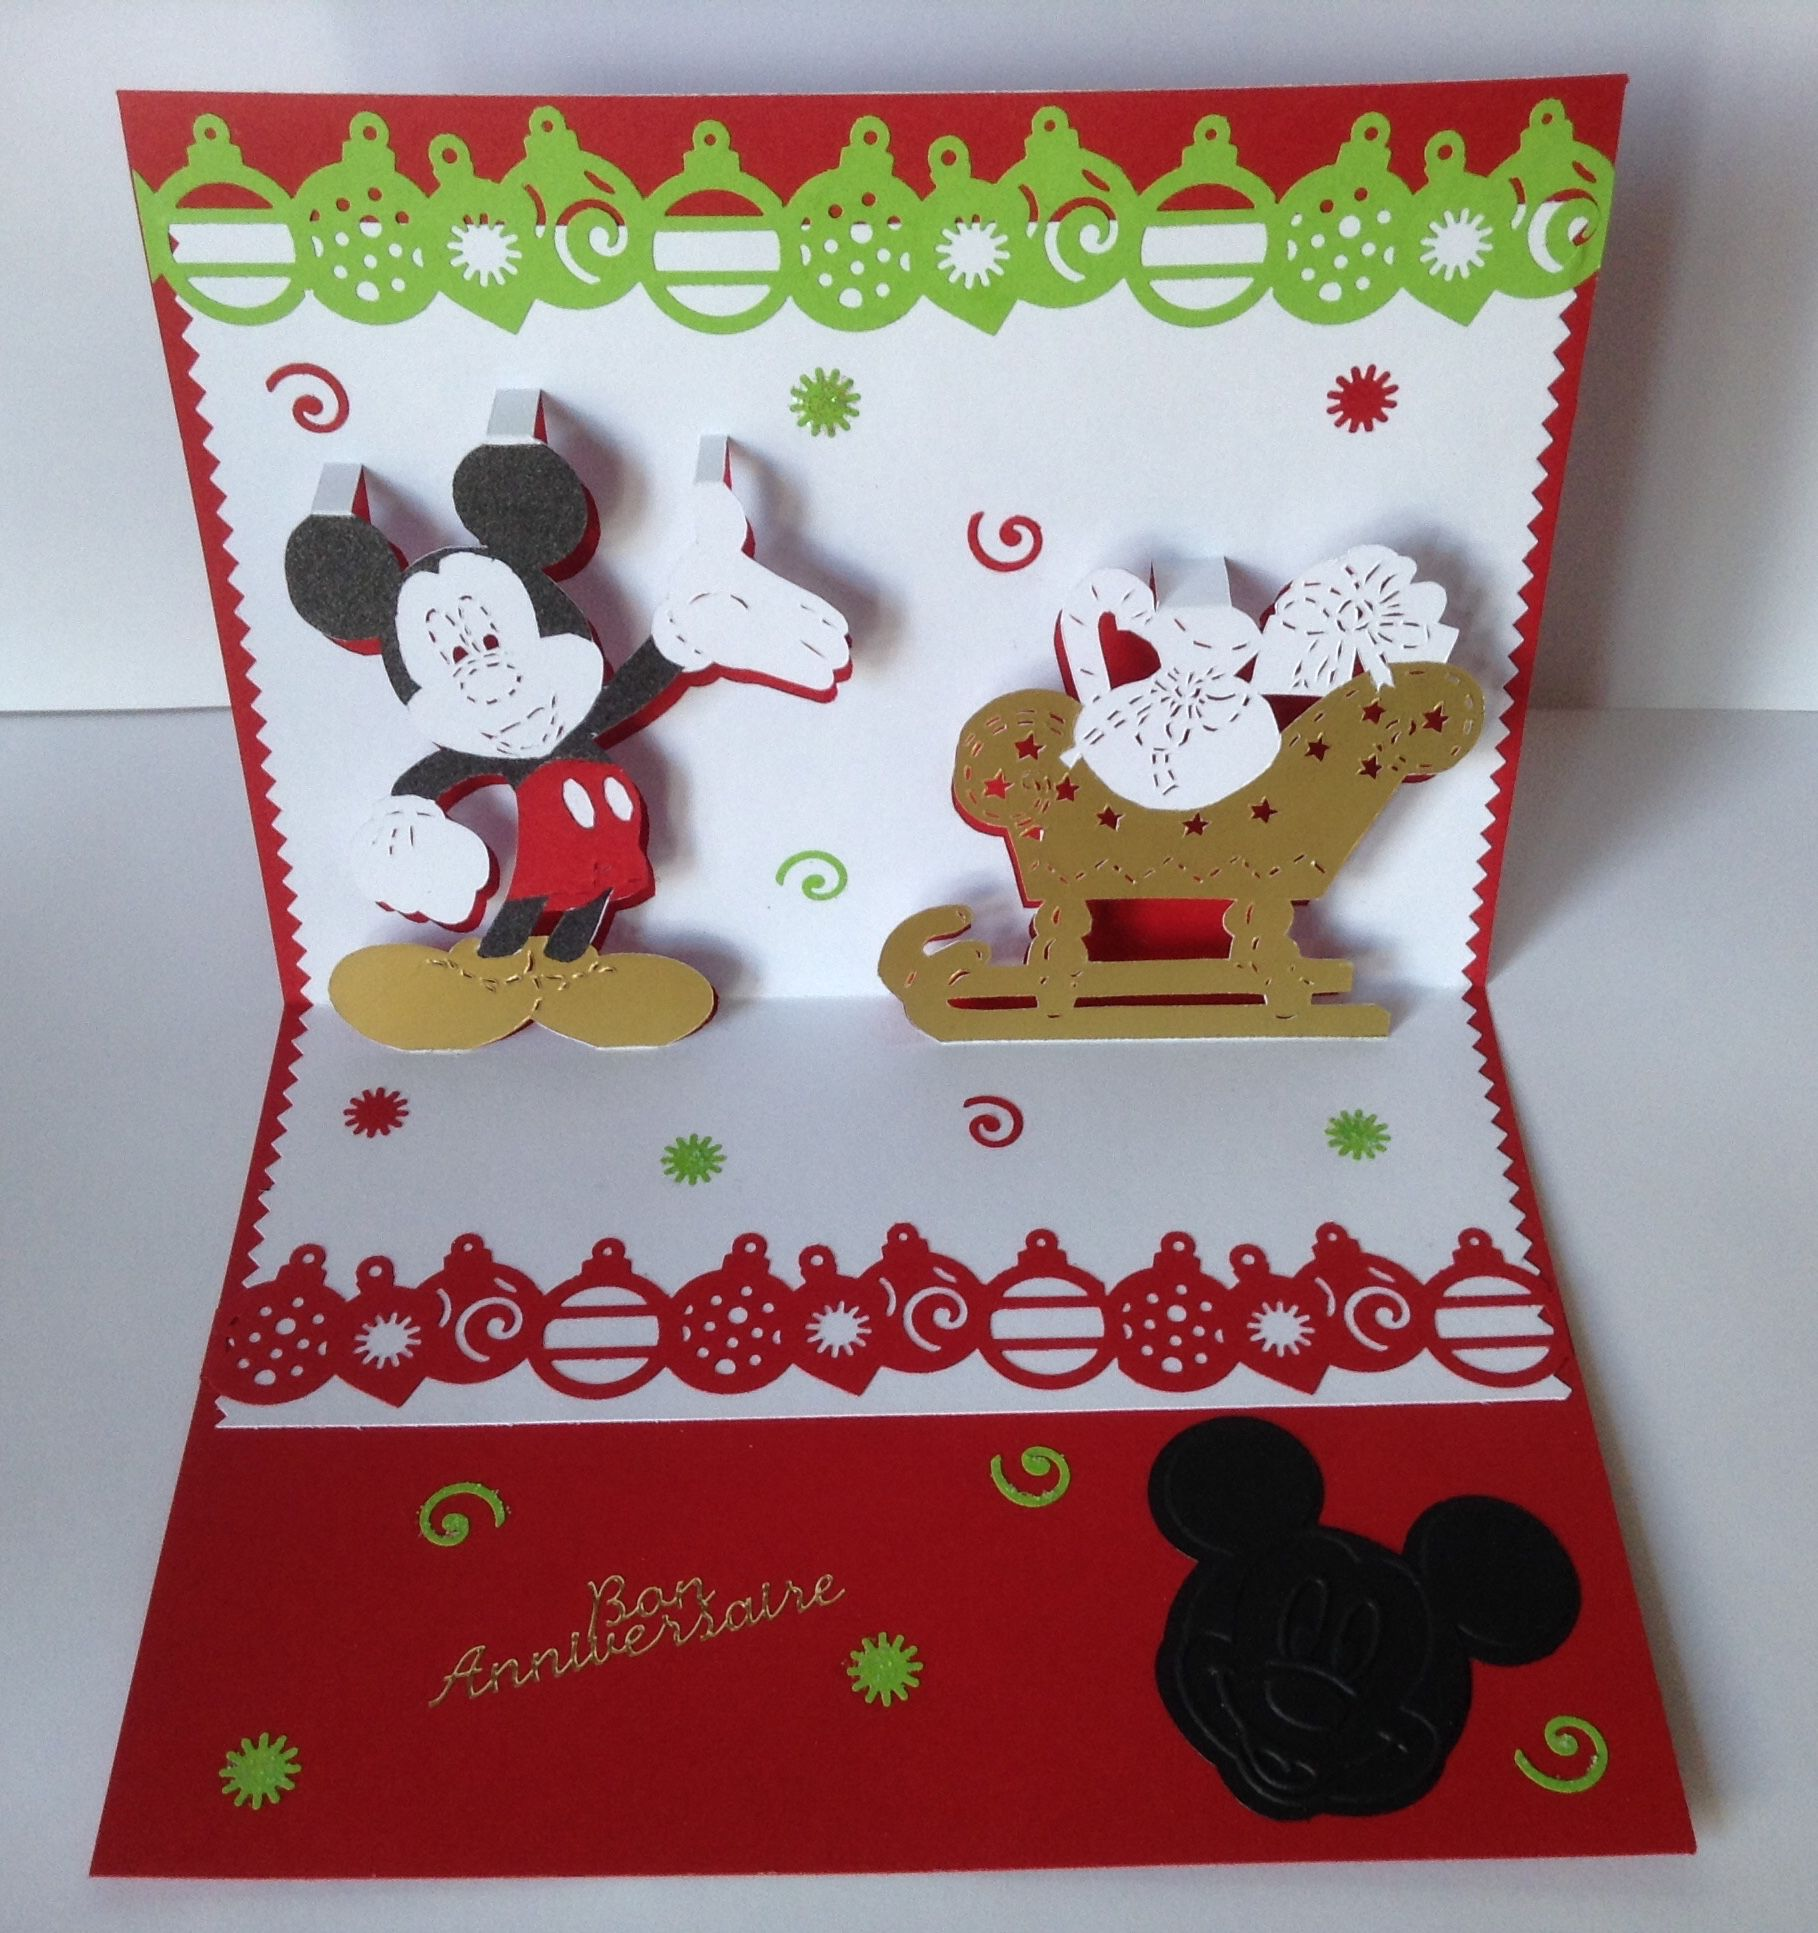 kirigami carte anniversaire mod le mickey et son tra neau de noel kirigami the kirigami. Black Bedroom Furniture Sets. Home Design Ideas